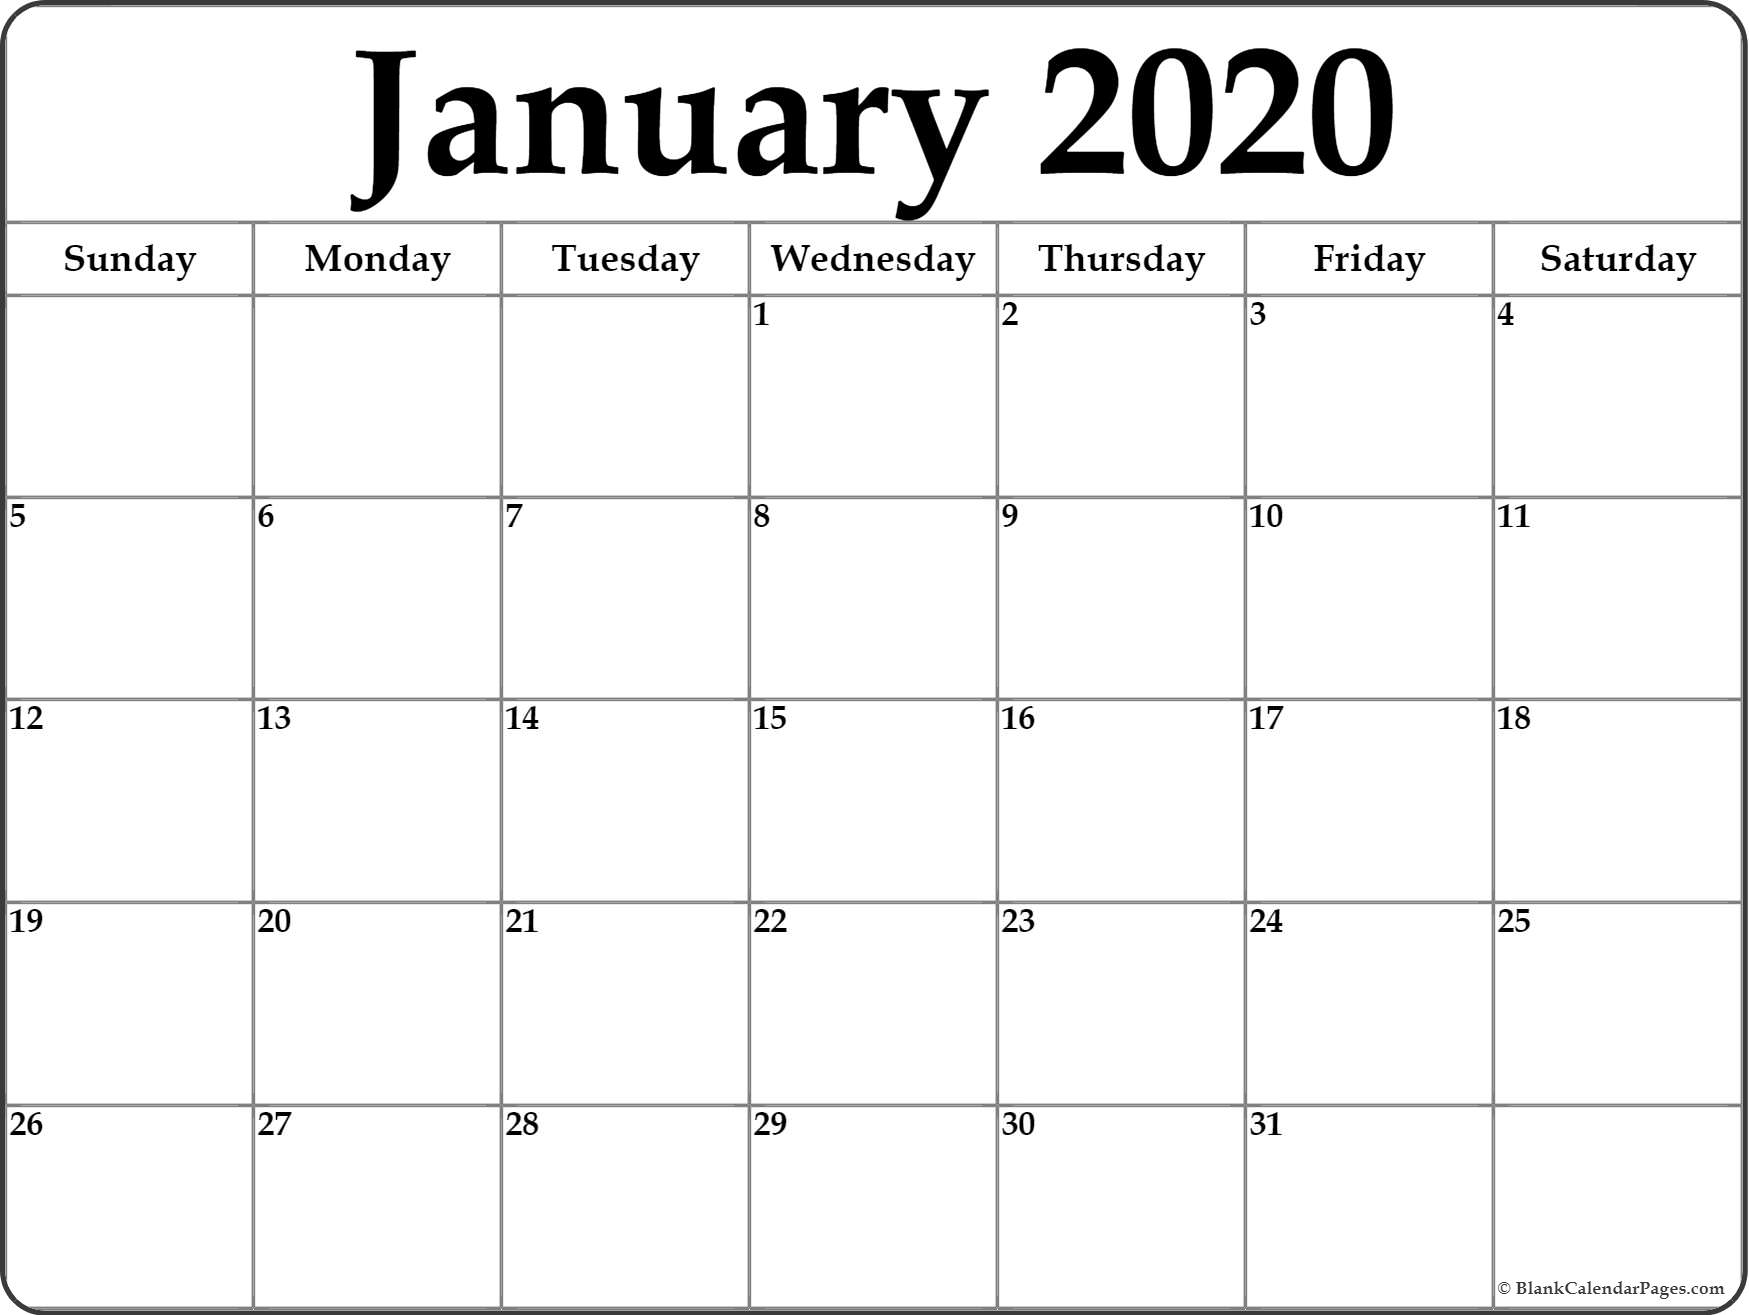 January 2020 Calendar | Free Printable Monthly Calendars with 2020 Free Printable Calendars Without Downloading Monthly